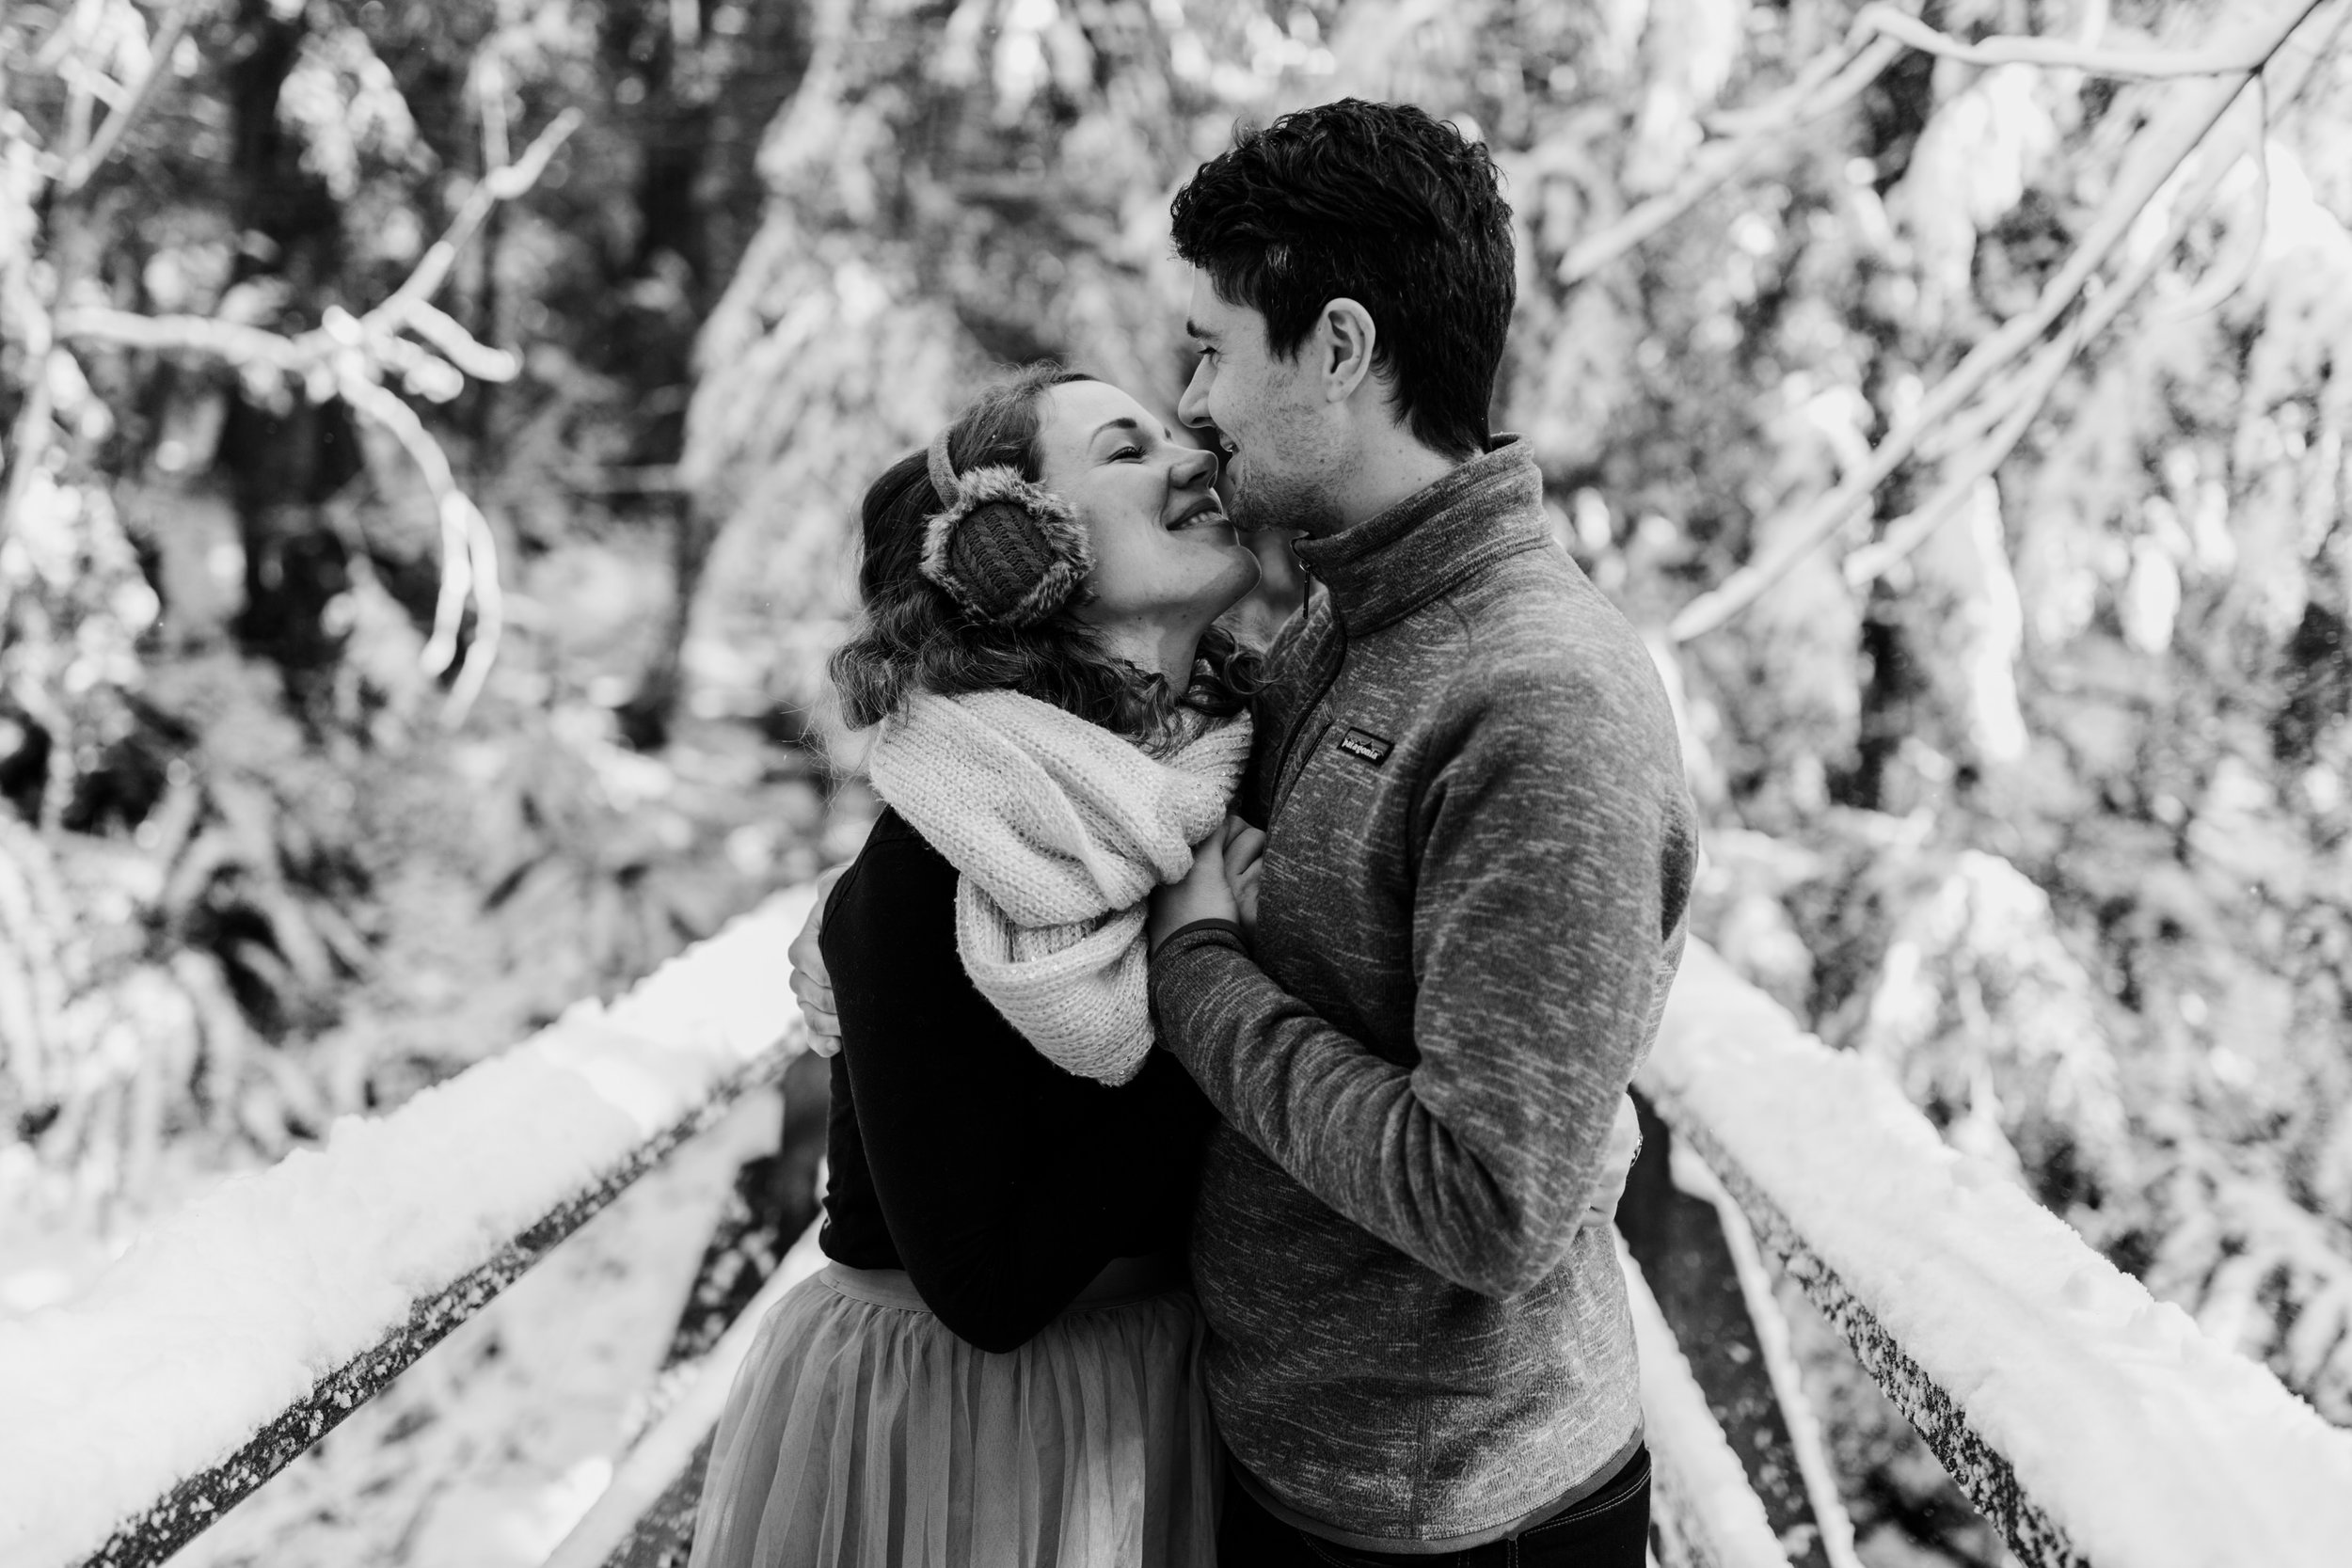 Snowy Engagement Photos - Gibsons Engagement Photos - Sunshine Coast Engagement Photos - Vancouver Wedding Photographer and Videographer - Jennifer Picard Photography110.JPG